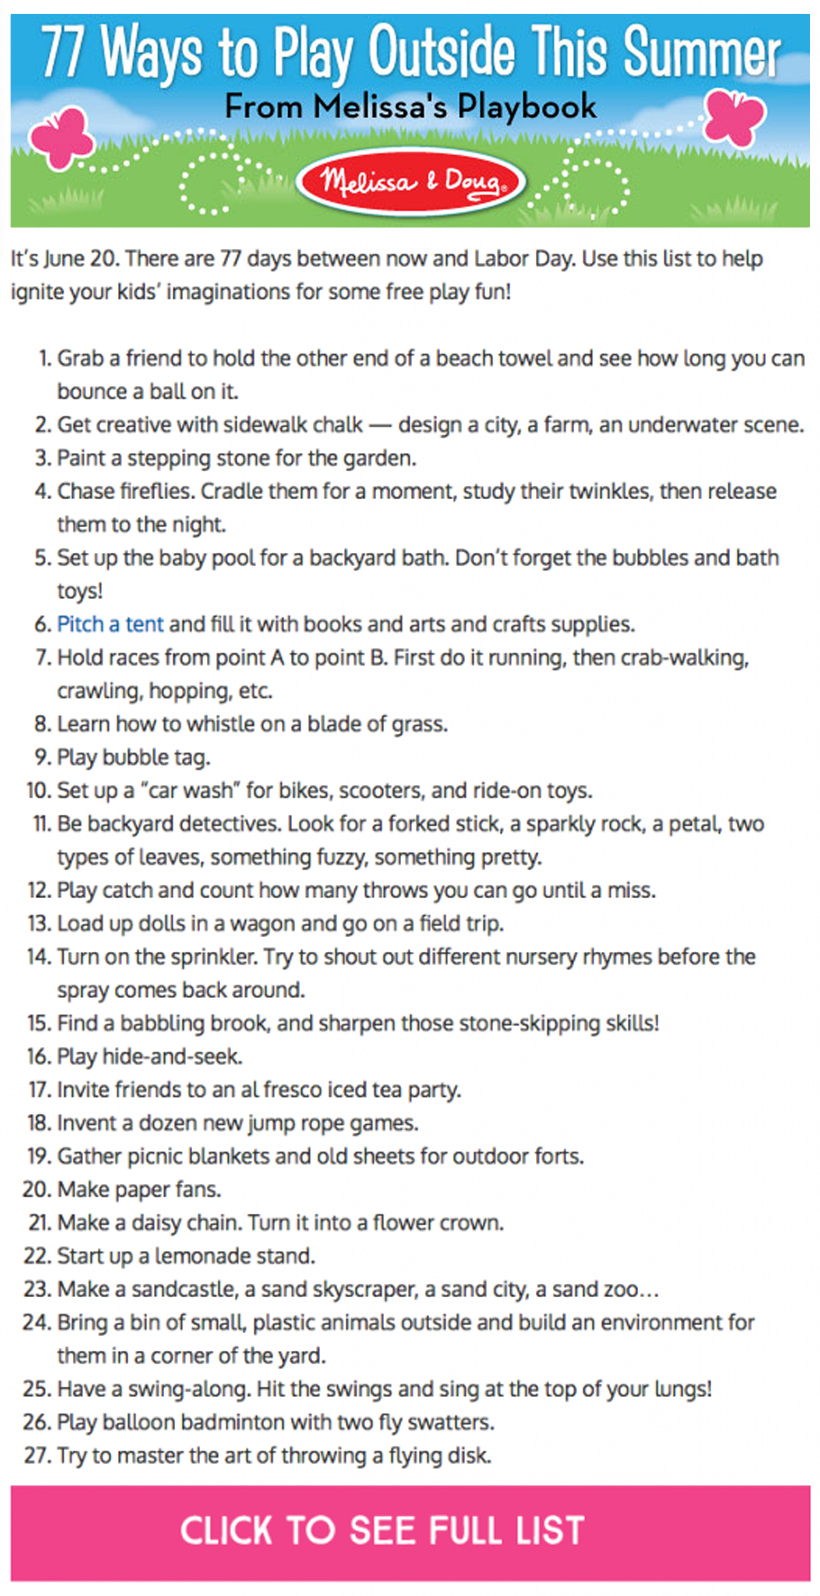 Melissa's Playbook 77 ways to play outside this summer printable